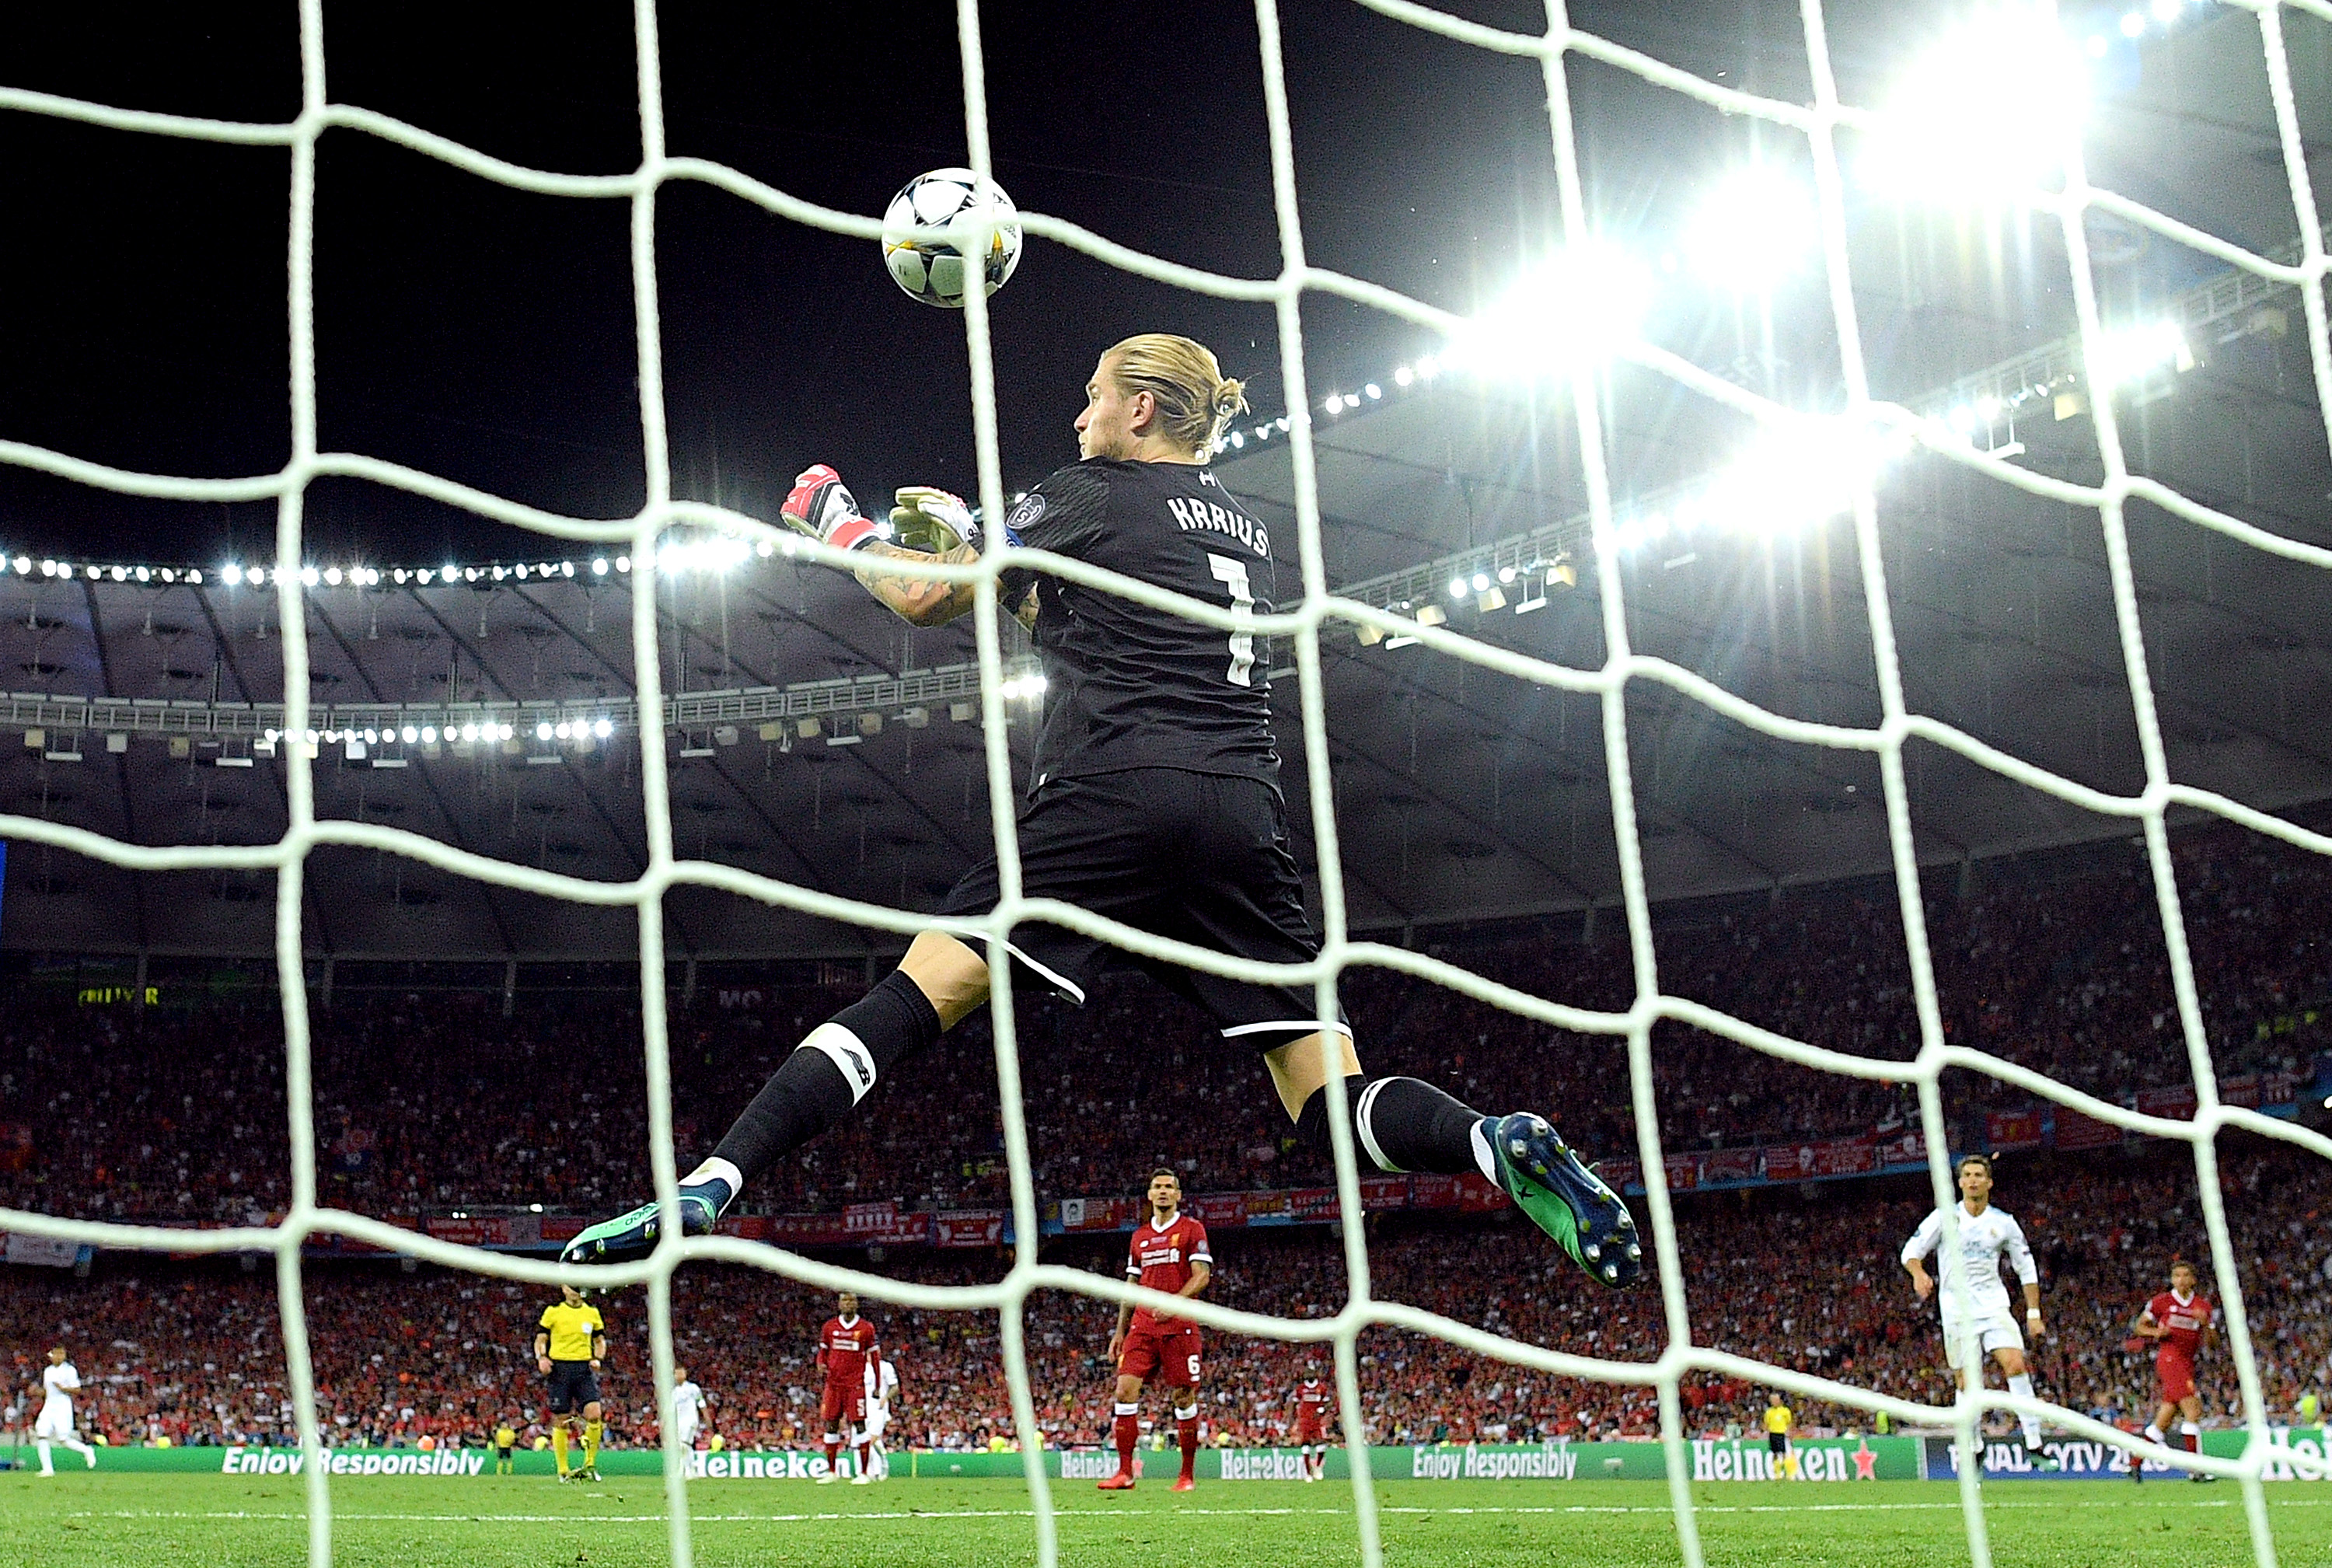 'You never let me walk alone' - Karius says goodbye to Liverpool